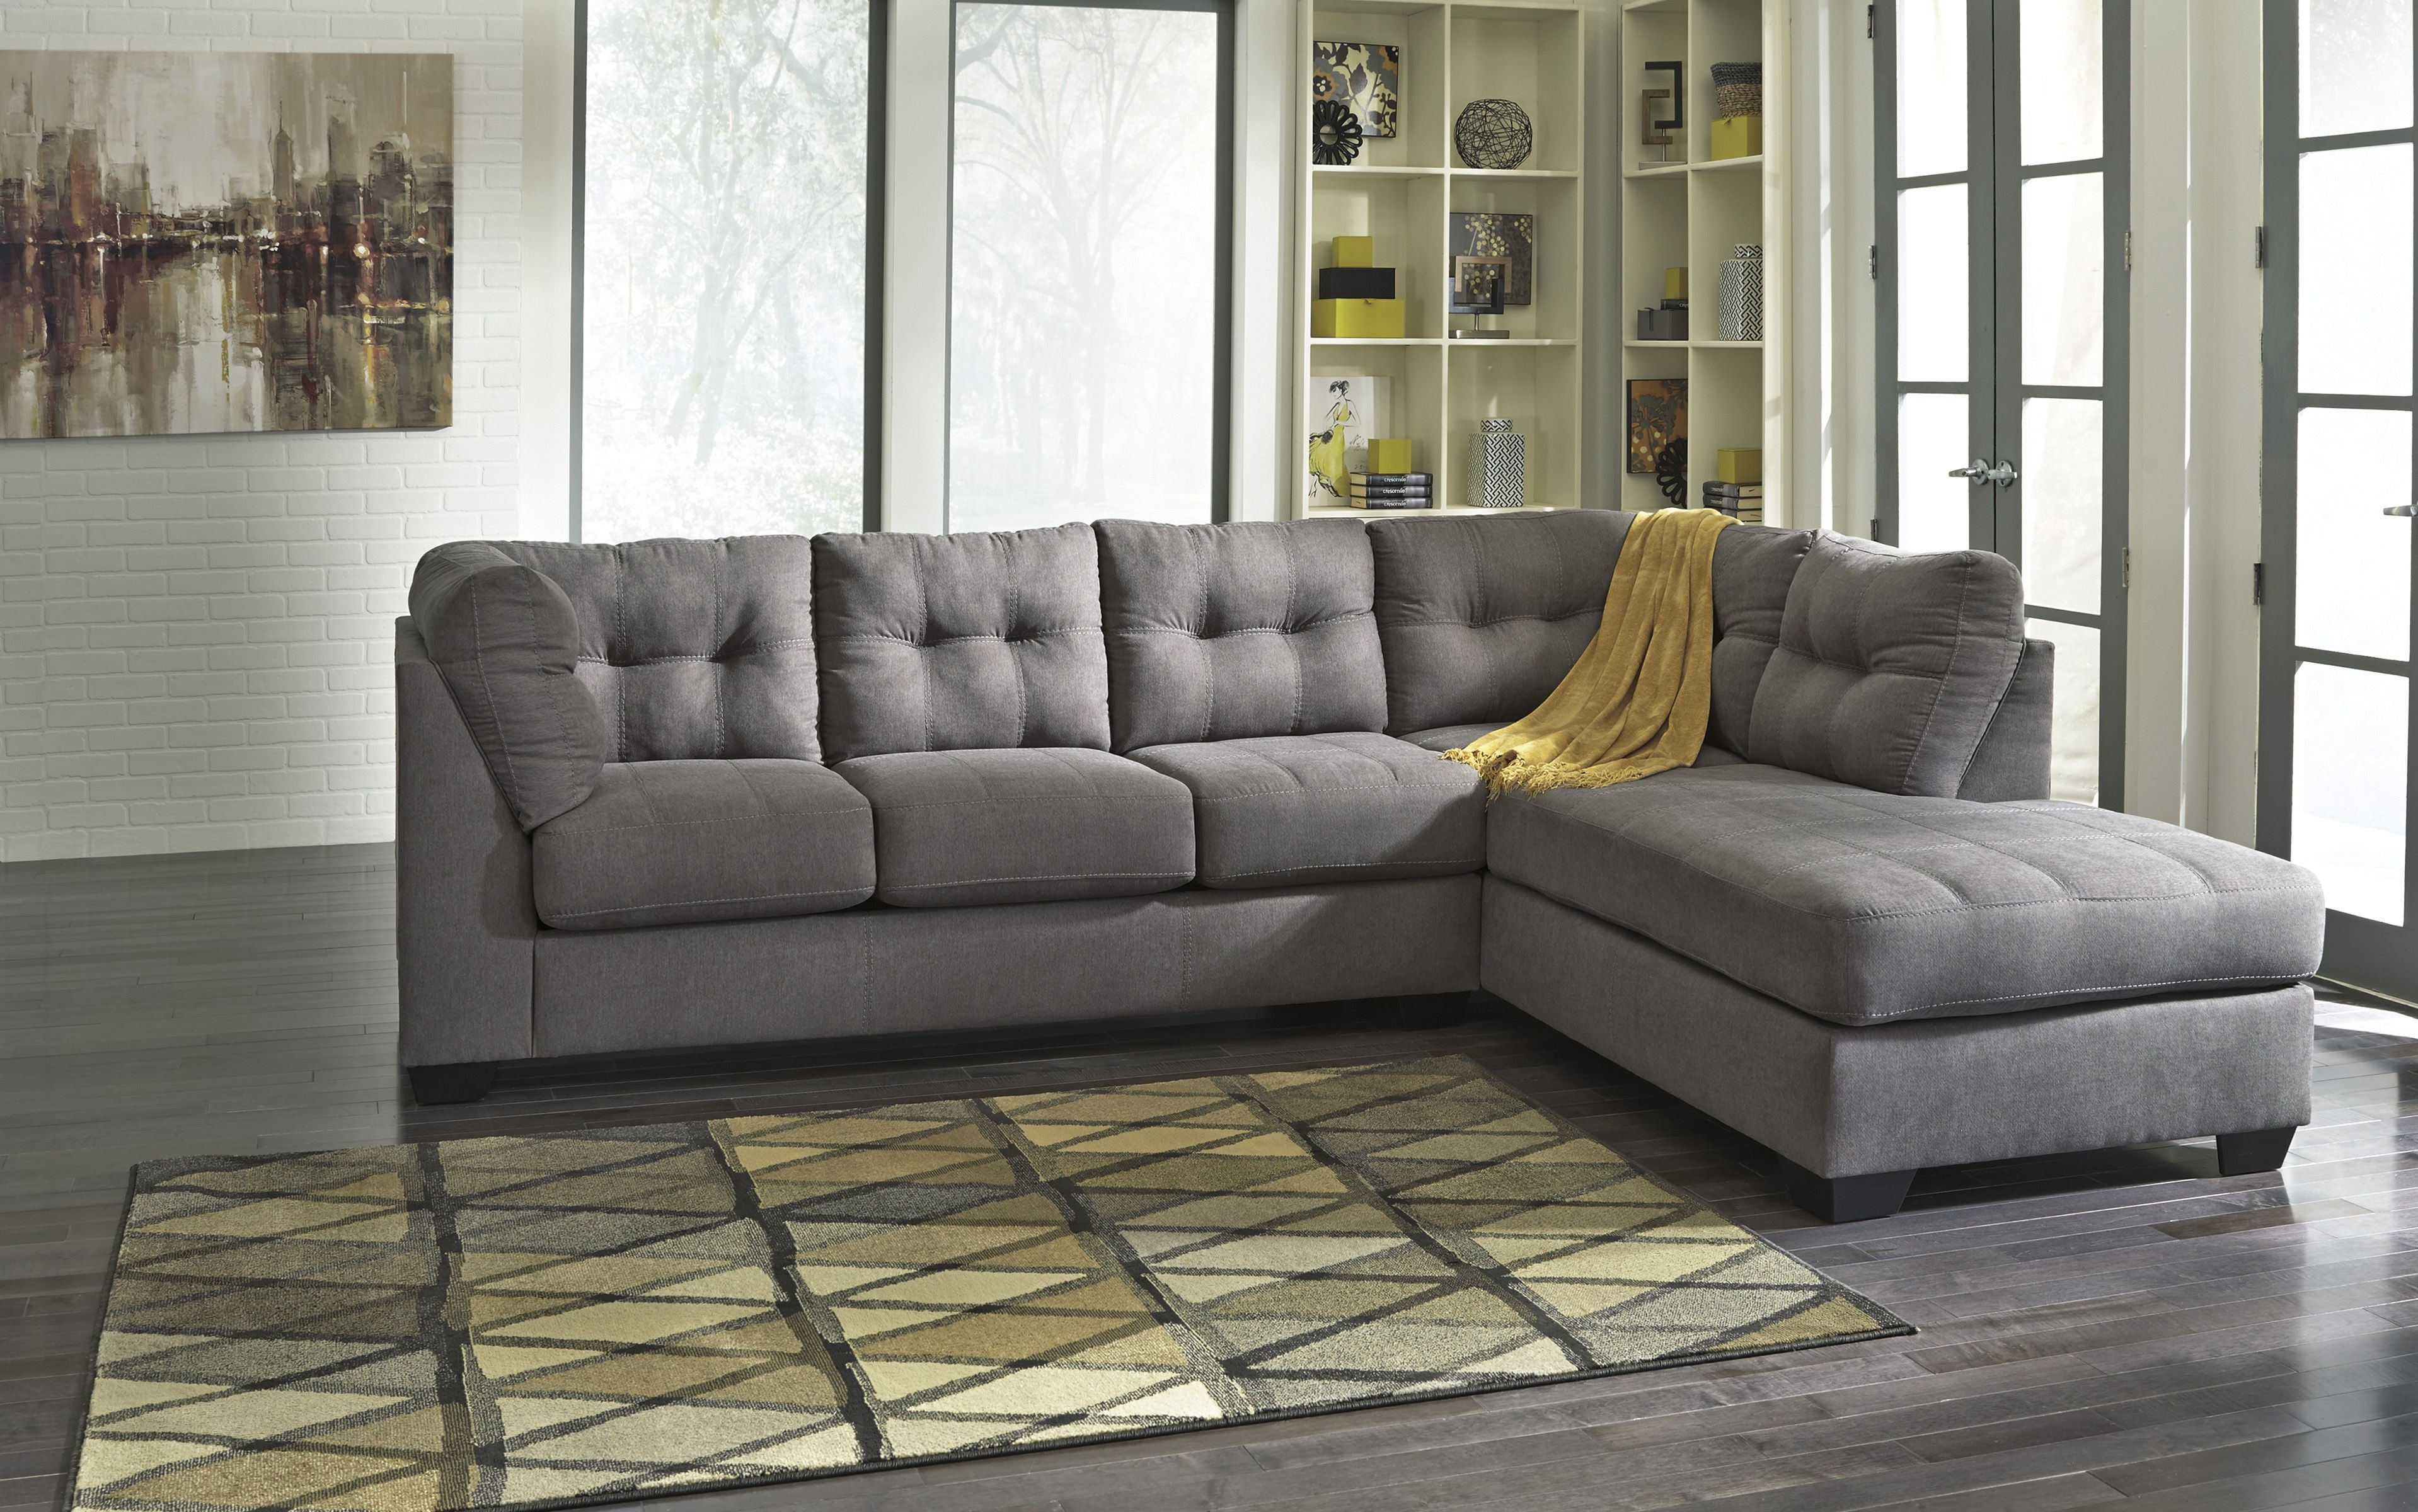 Ashley Furniture Maier Charcoal Raf Chaise Sectional | The Classy Home In Lucy Dark Grey 2 Piece Sleeper Sectionals With Raf Chaise (View 8 of 25)